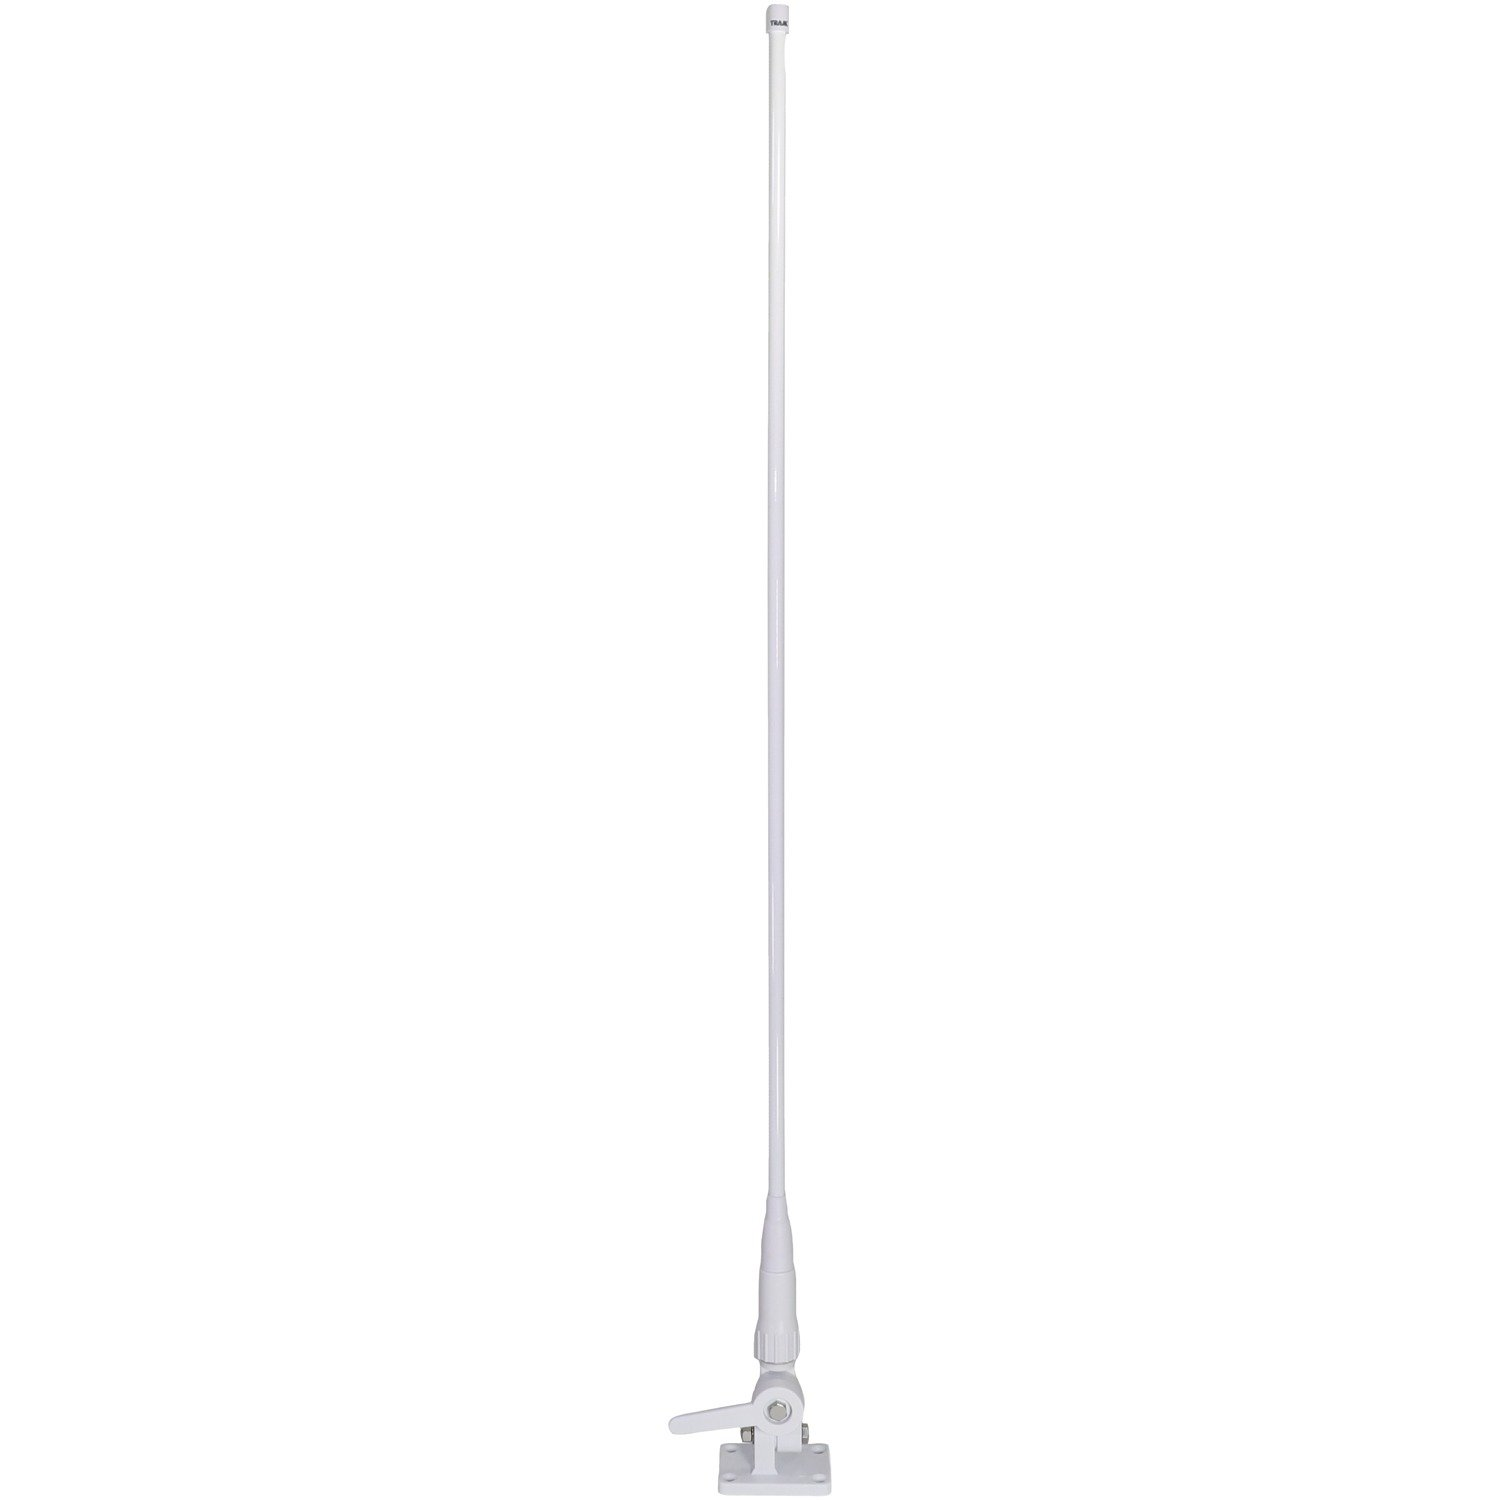 TRAM(R) 1614 46'' VHF 3 Dbd Gain Marine Antenna with Cable Built-in to Ratchet Mount, Silver by TRAM(R)